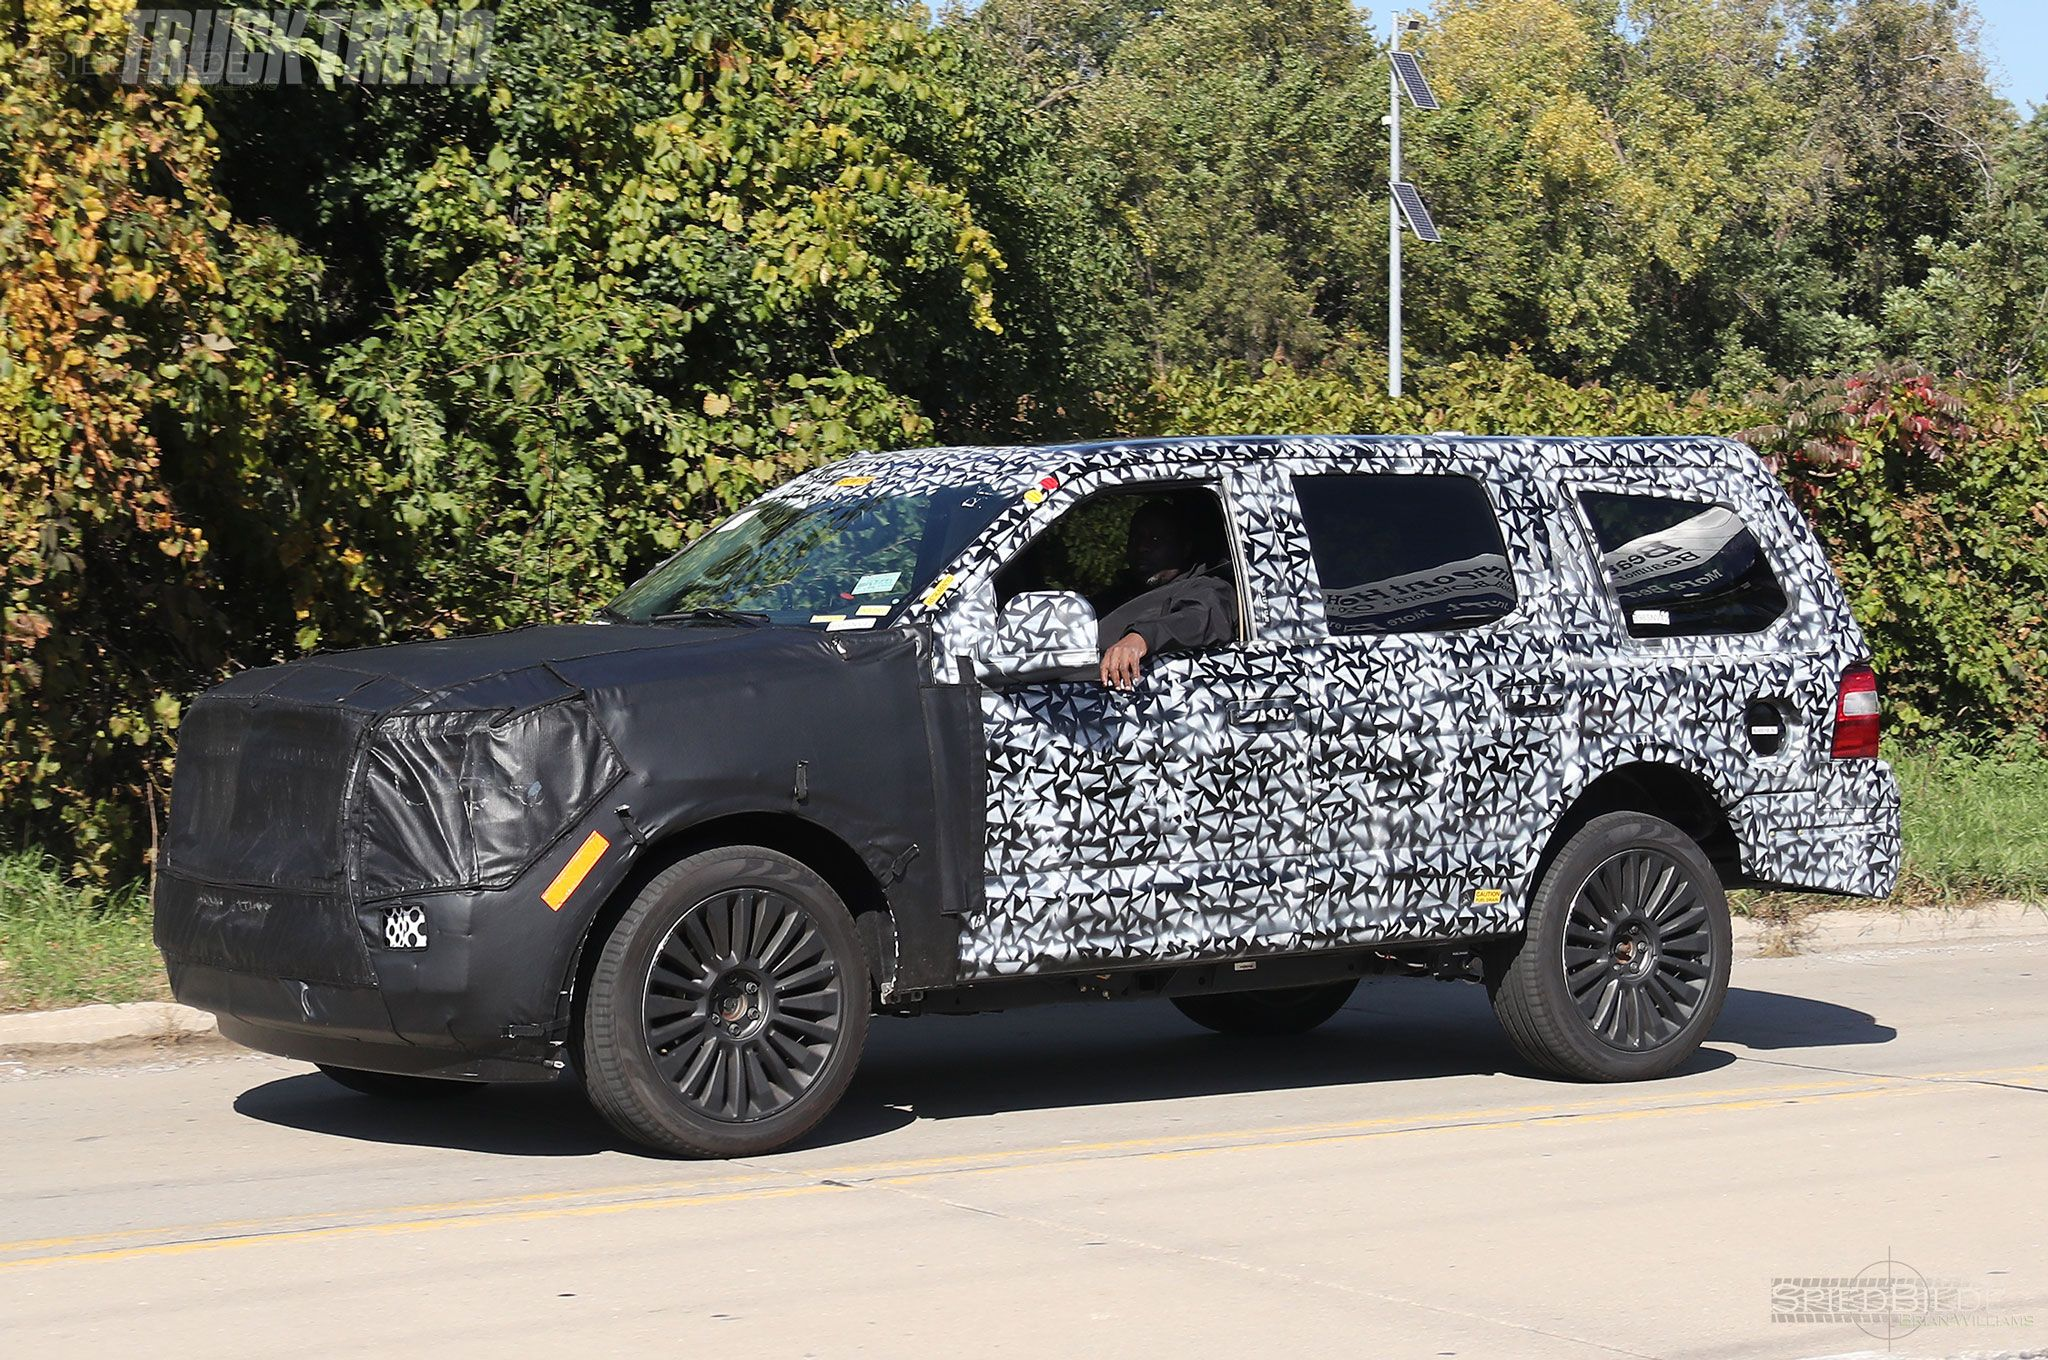 2019 Lincoln Navigator Spy Pictures